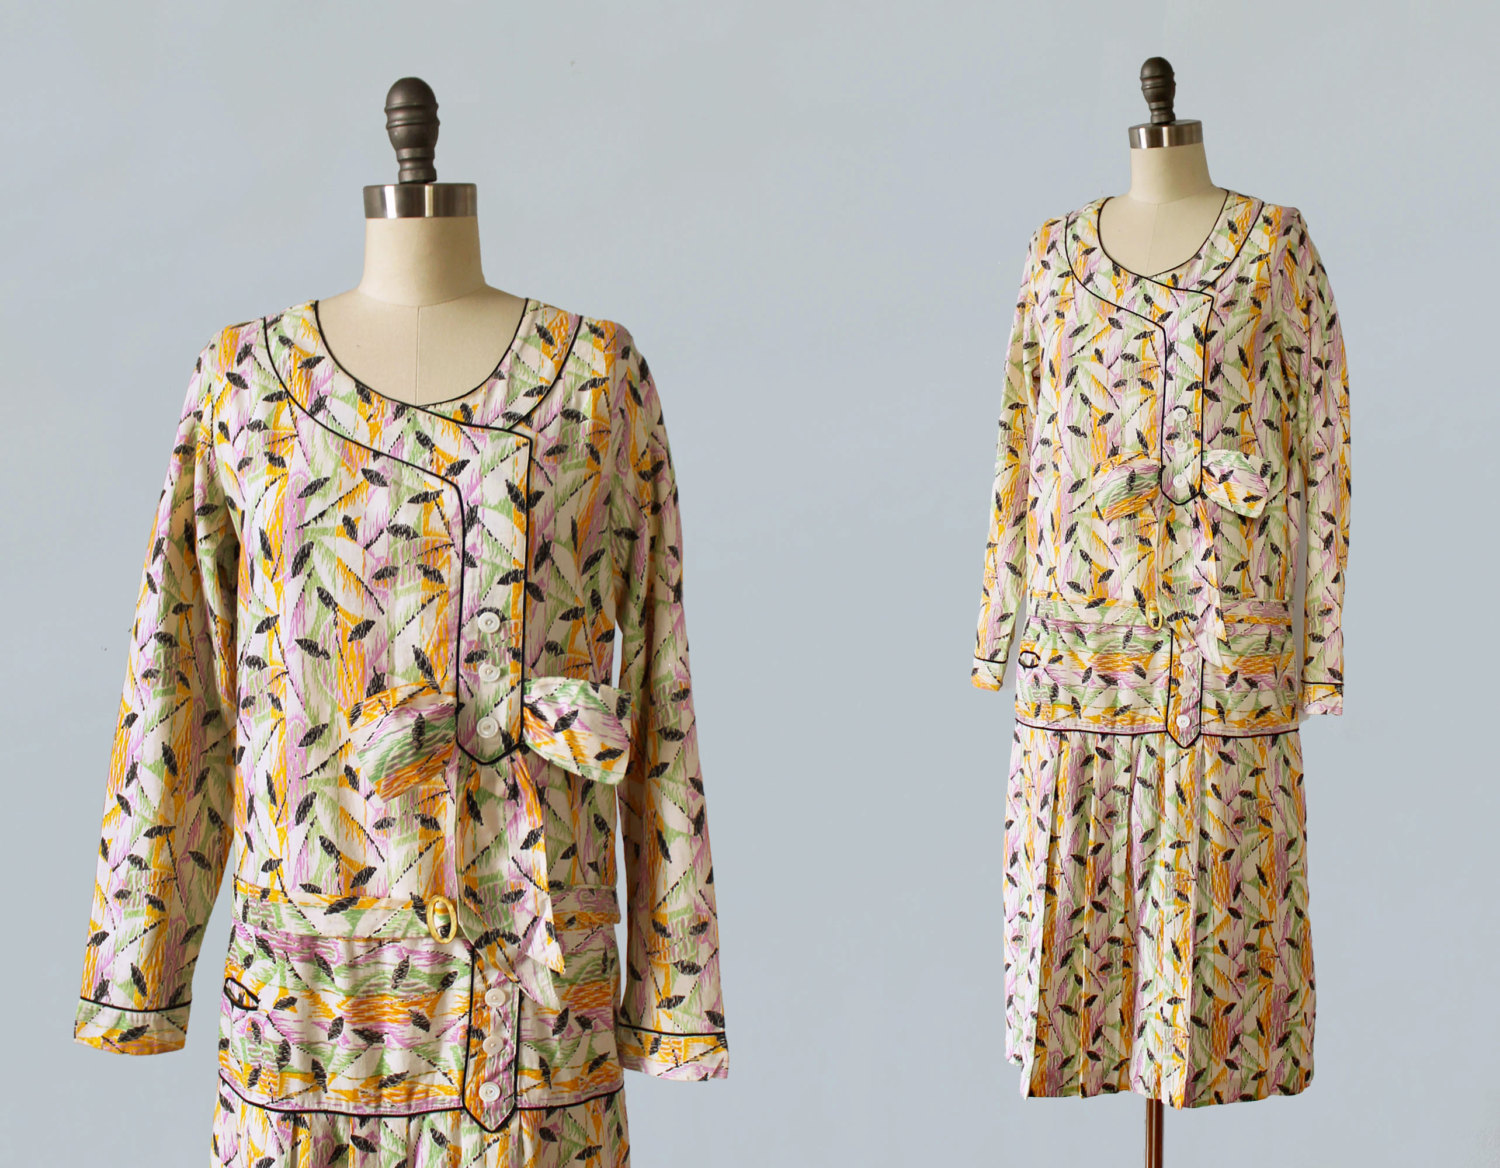 Printed cotton dress. 1920s.